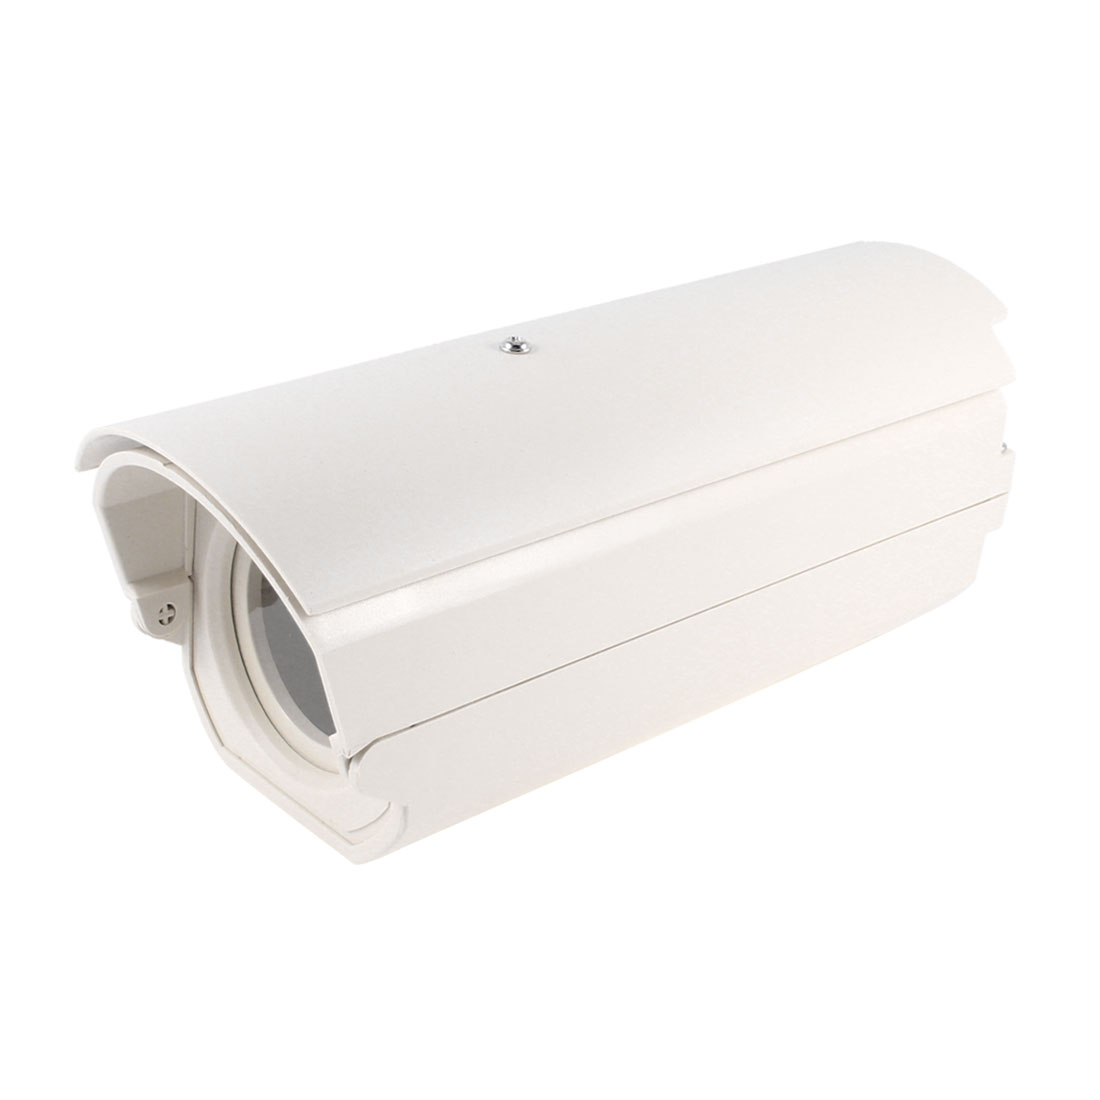 "CCTV Camera Plastic Protective Housing Case 11"" x 4"" x 4.5"""